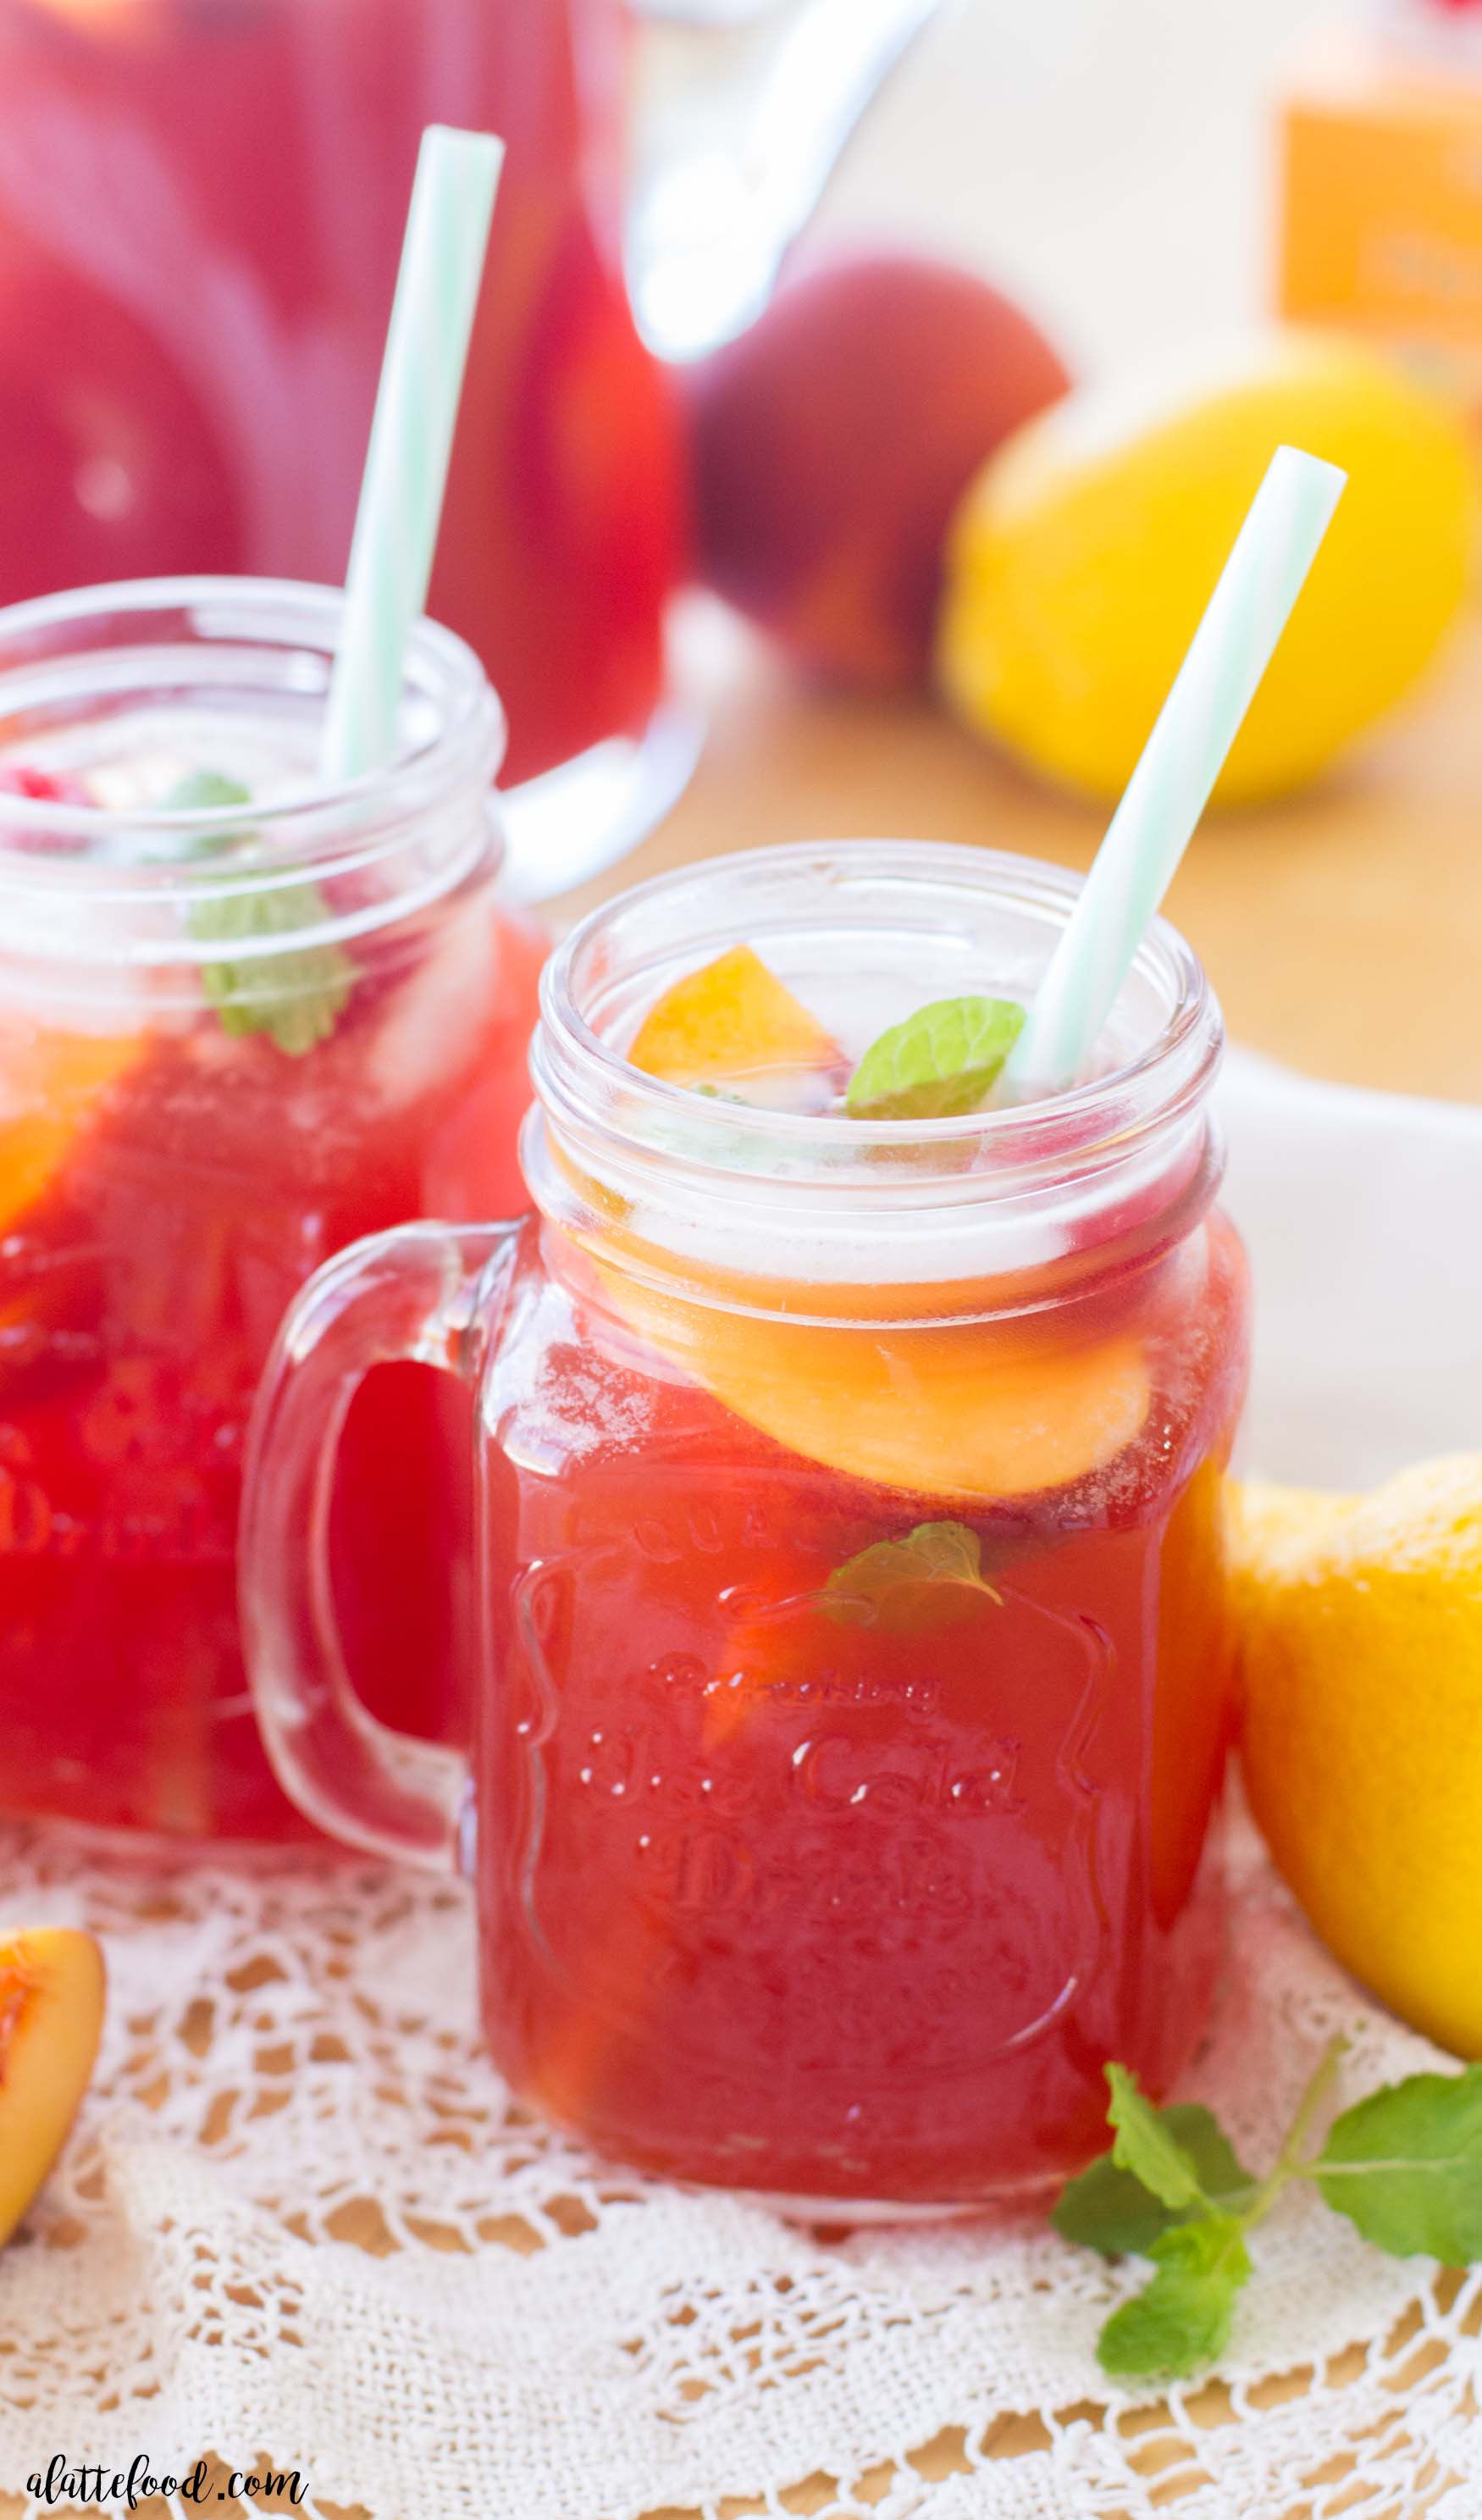 ... and This easy homemade iced tea recipe is filled with fresh peaches, sweet raspberries, and